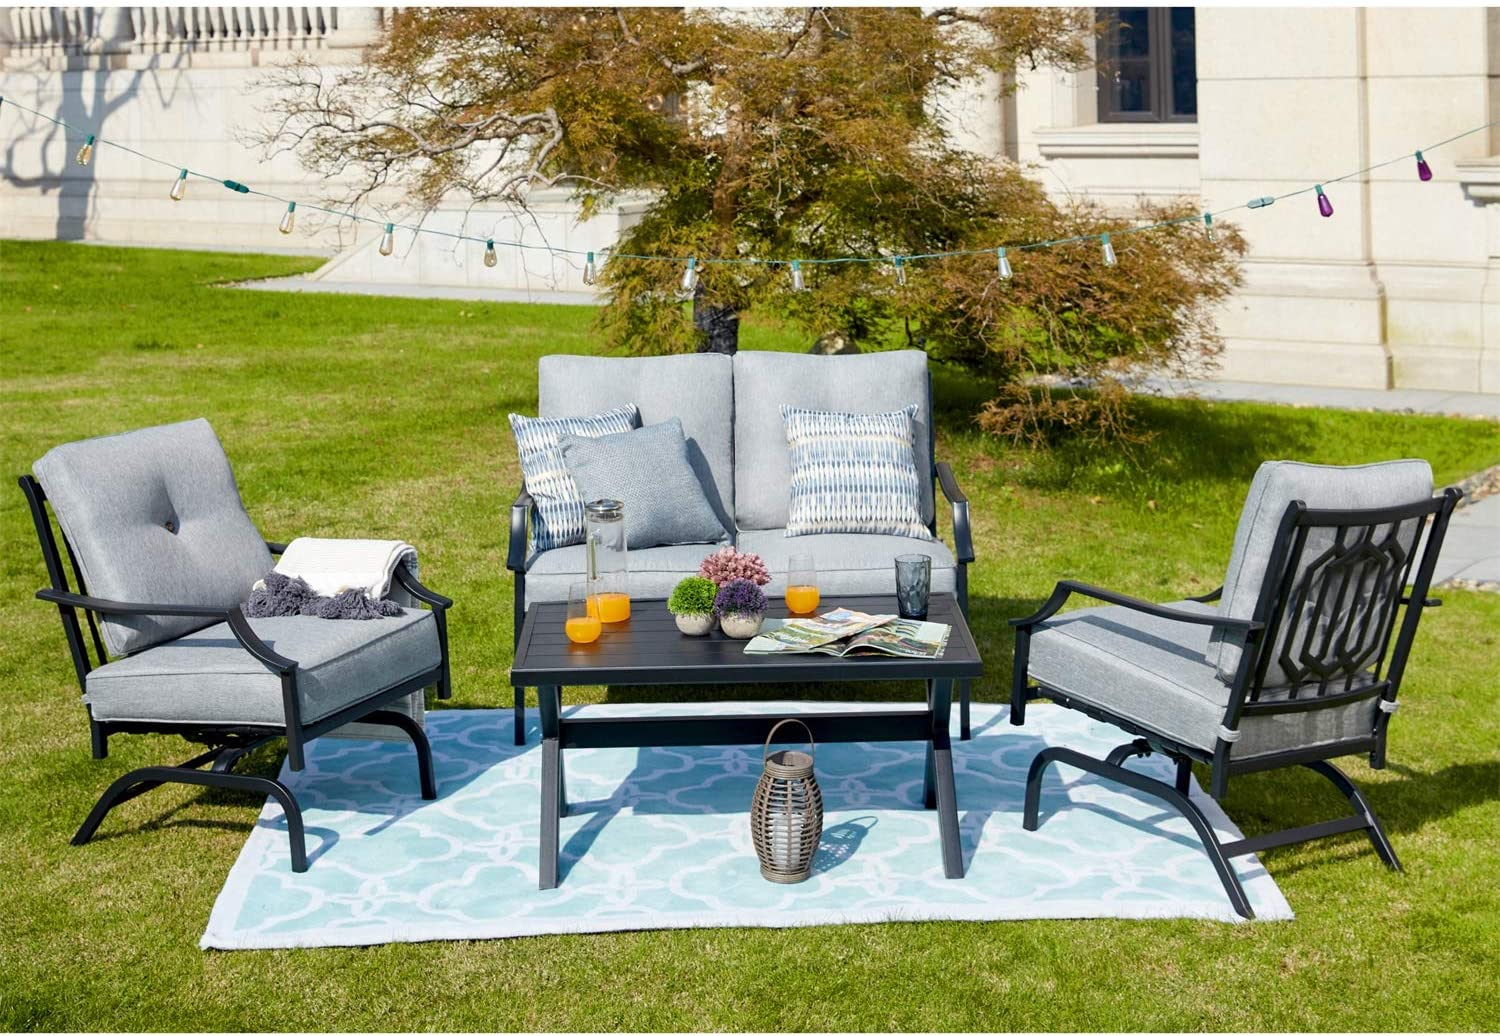 Patio Festival 4 Pices Furniture Conversation Ou In stock Set Max 71% OFF Metal